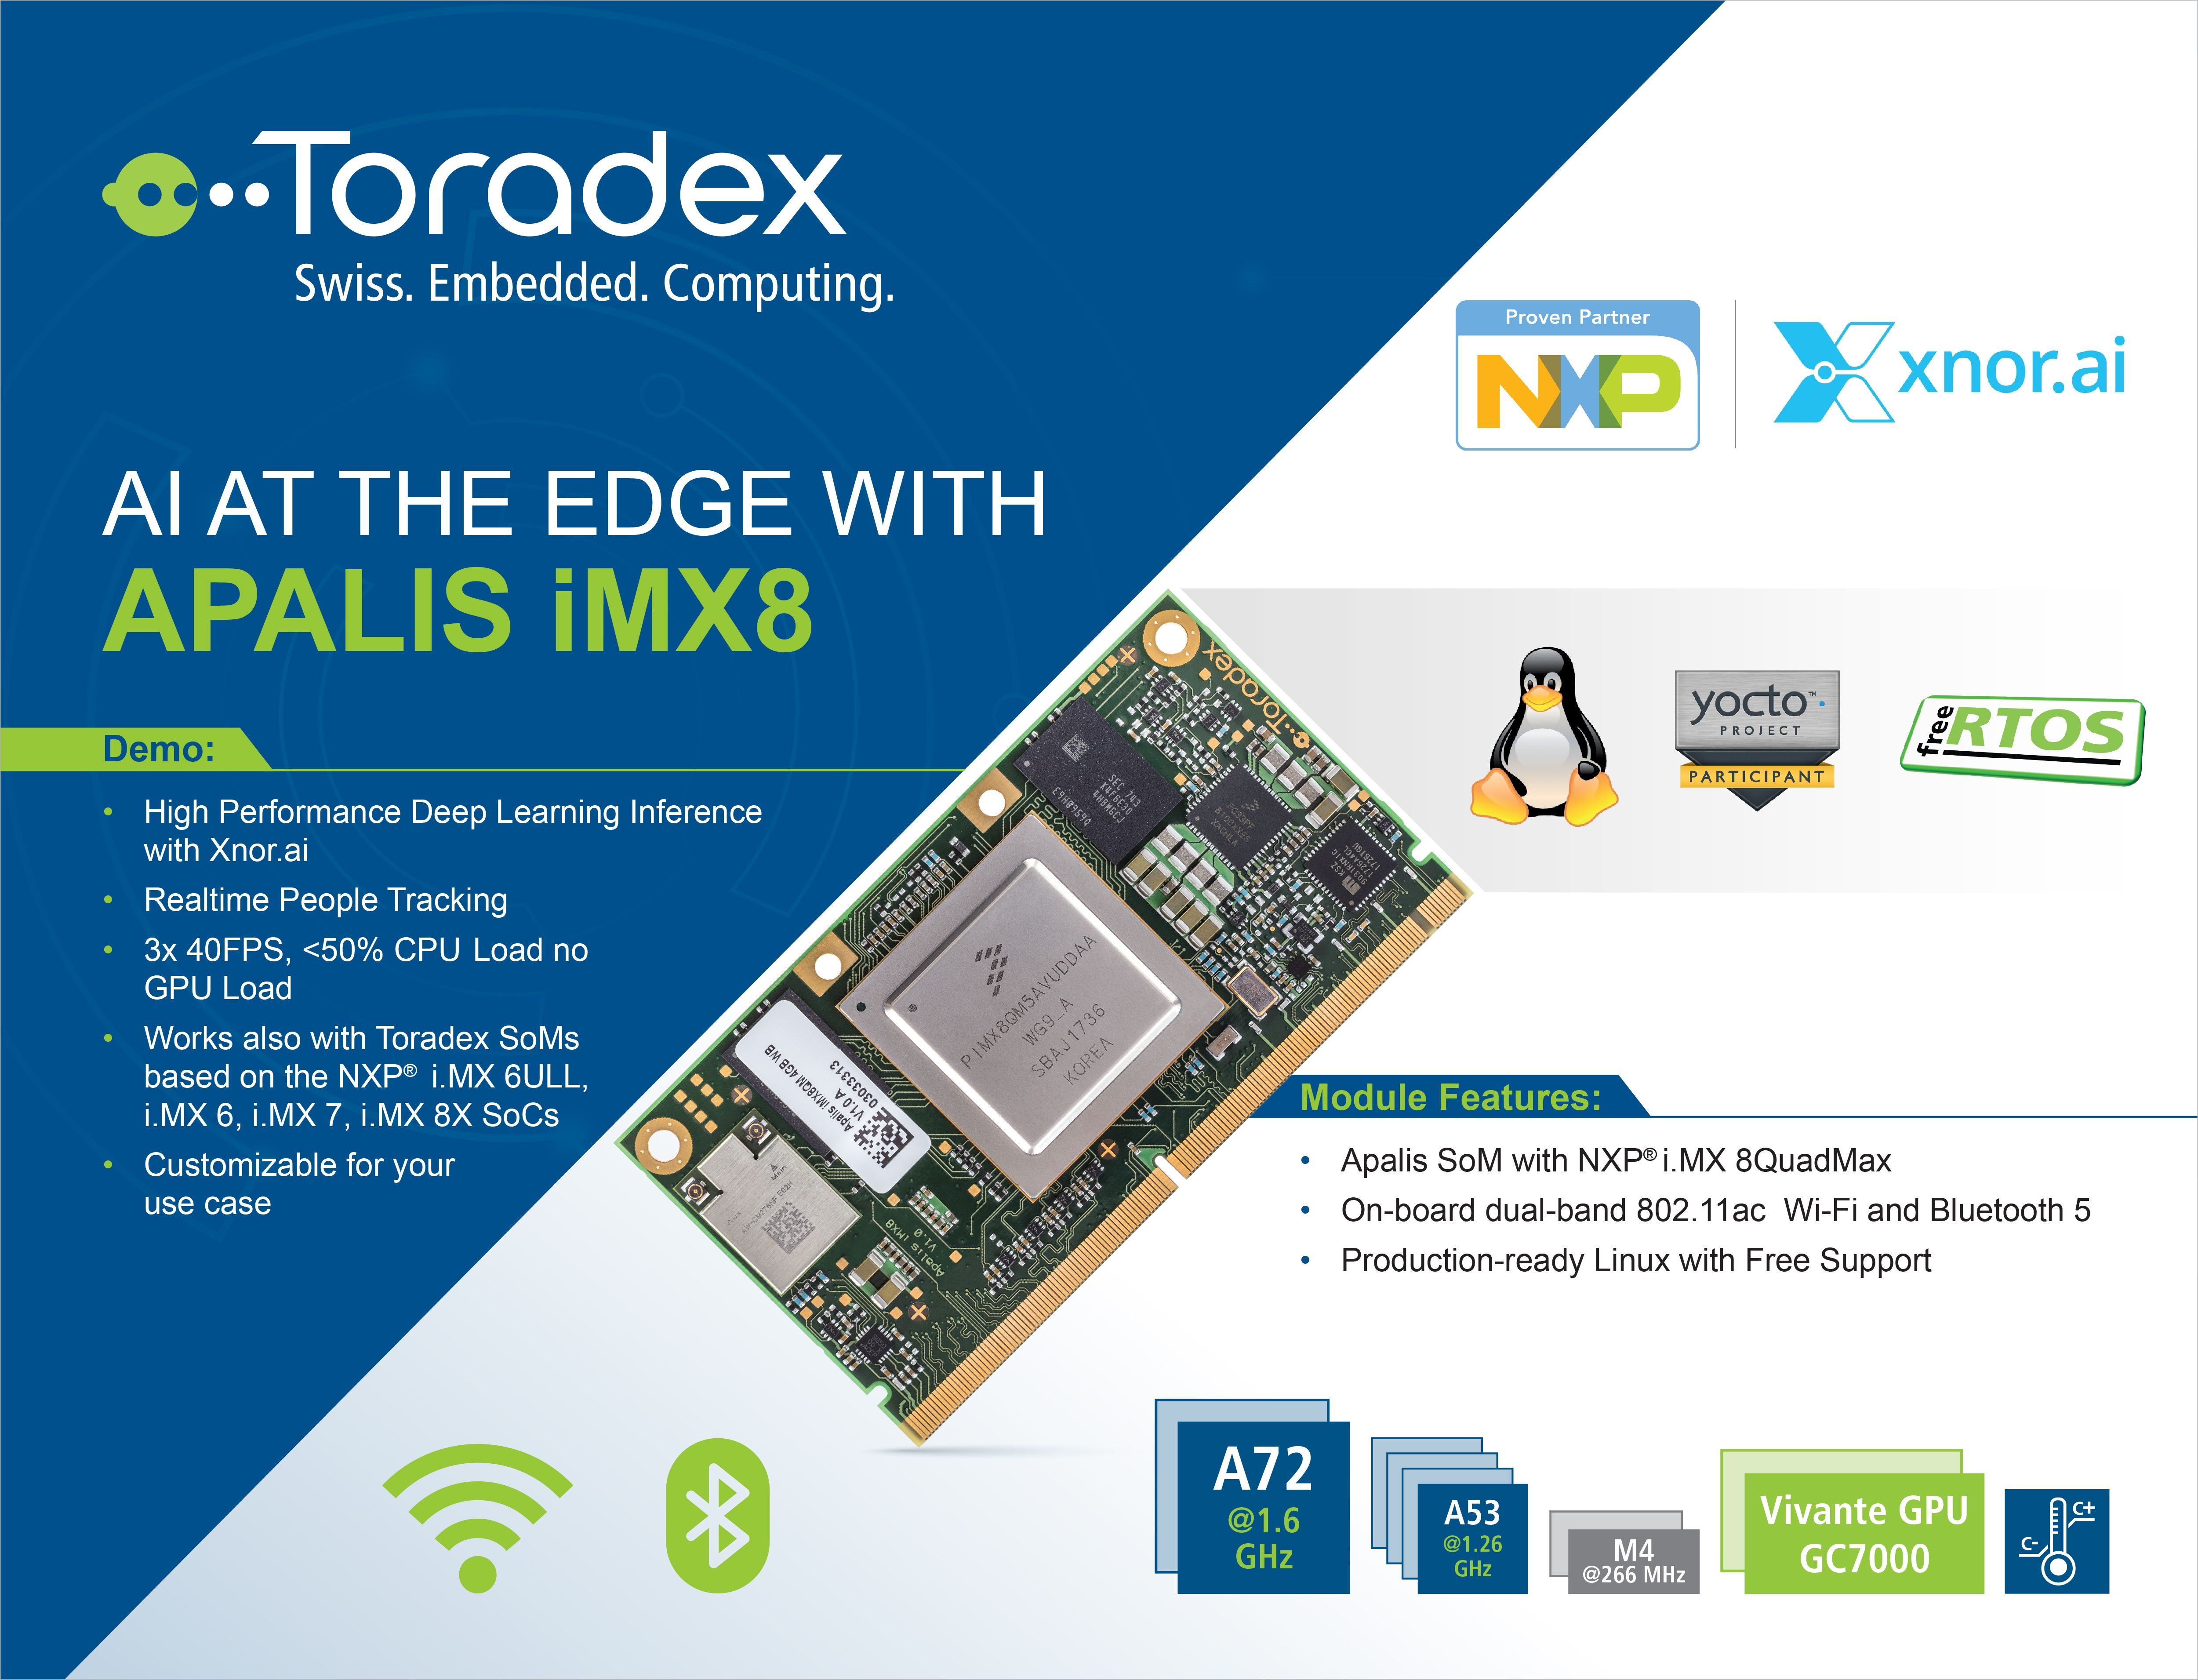 Take a look at our exciting demo at our partner #NXP's booth